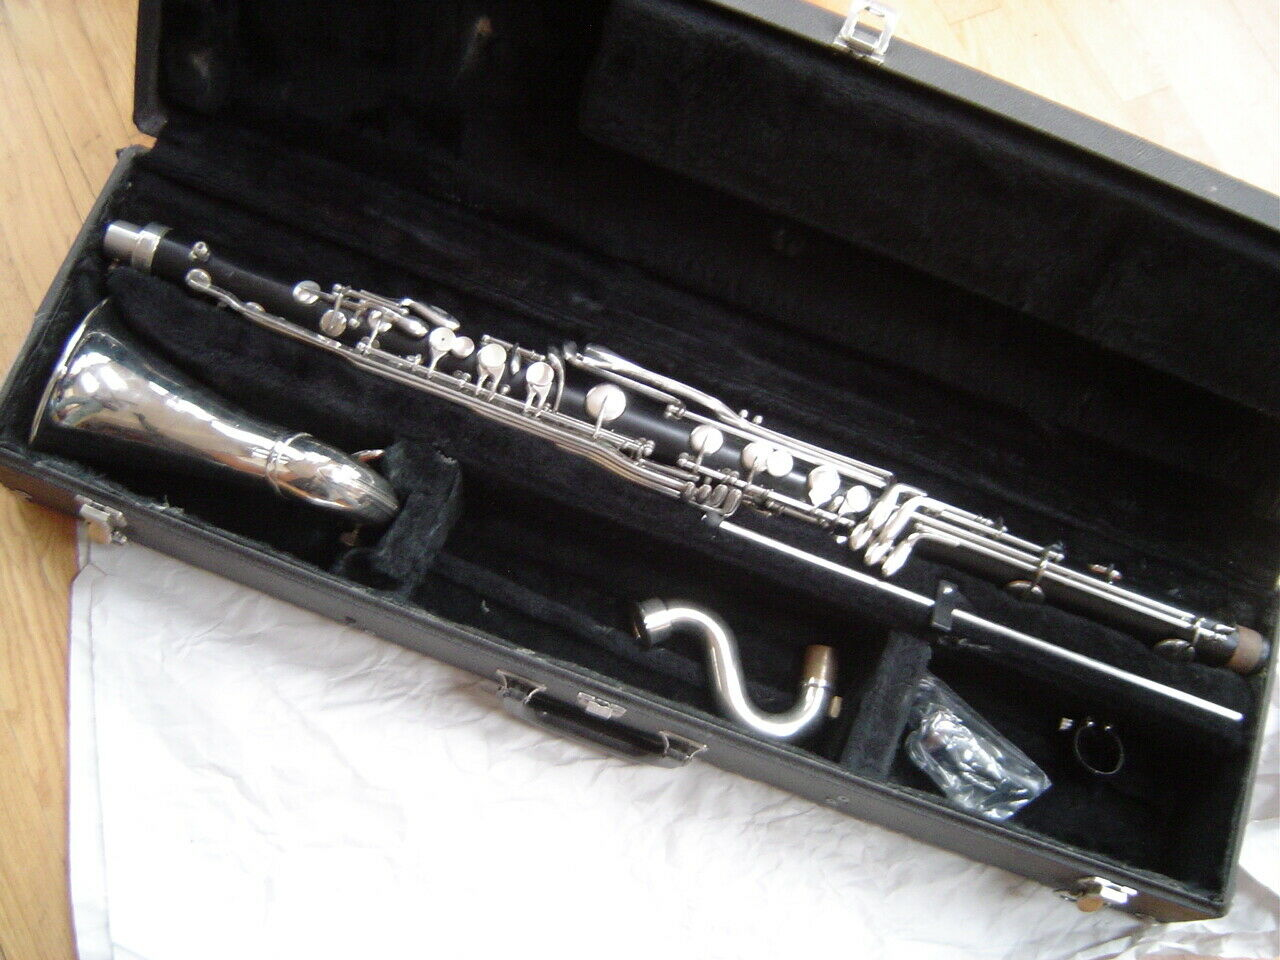 Vintage Bundy Bass Clarinet - Plays Great - Excellent Condition